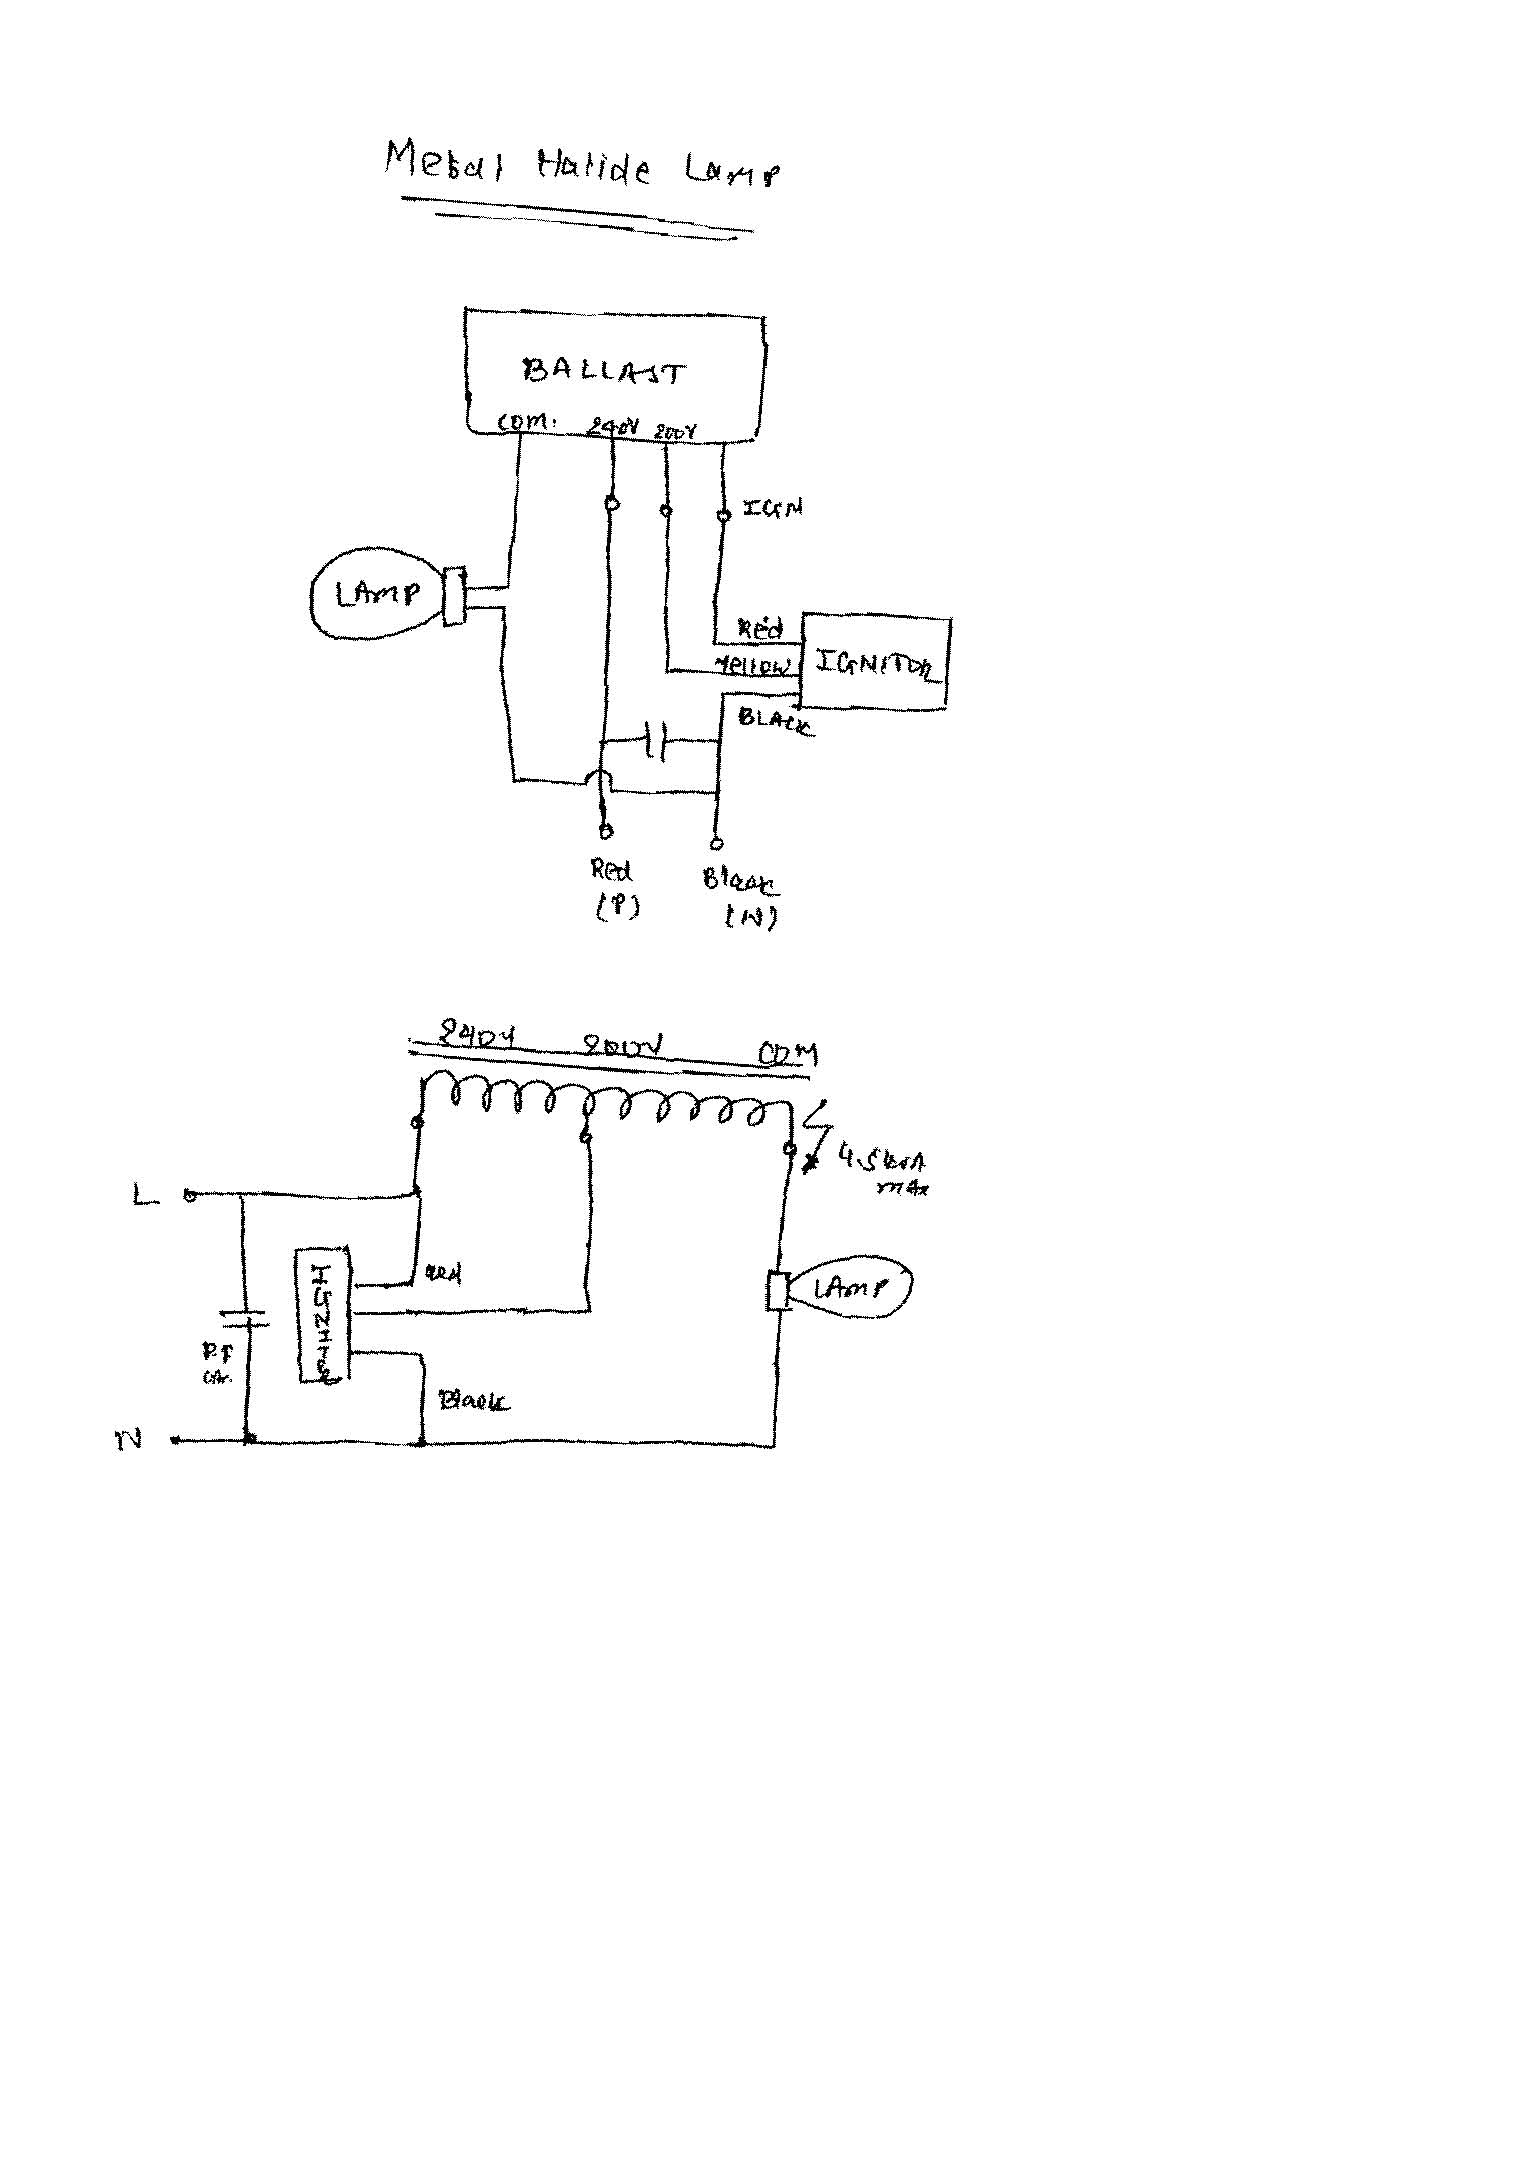 Ballast Diagram on Metal Halide Ballast Wiring Diagram